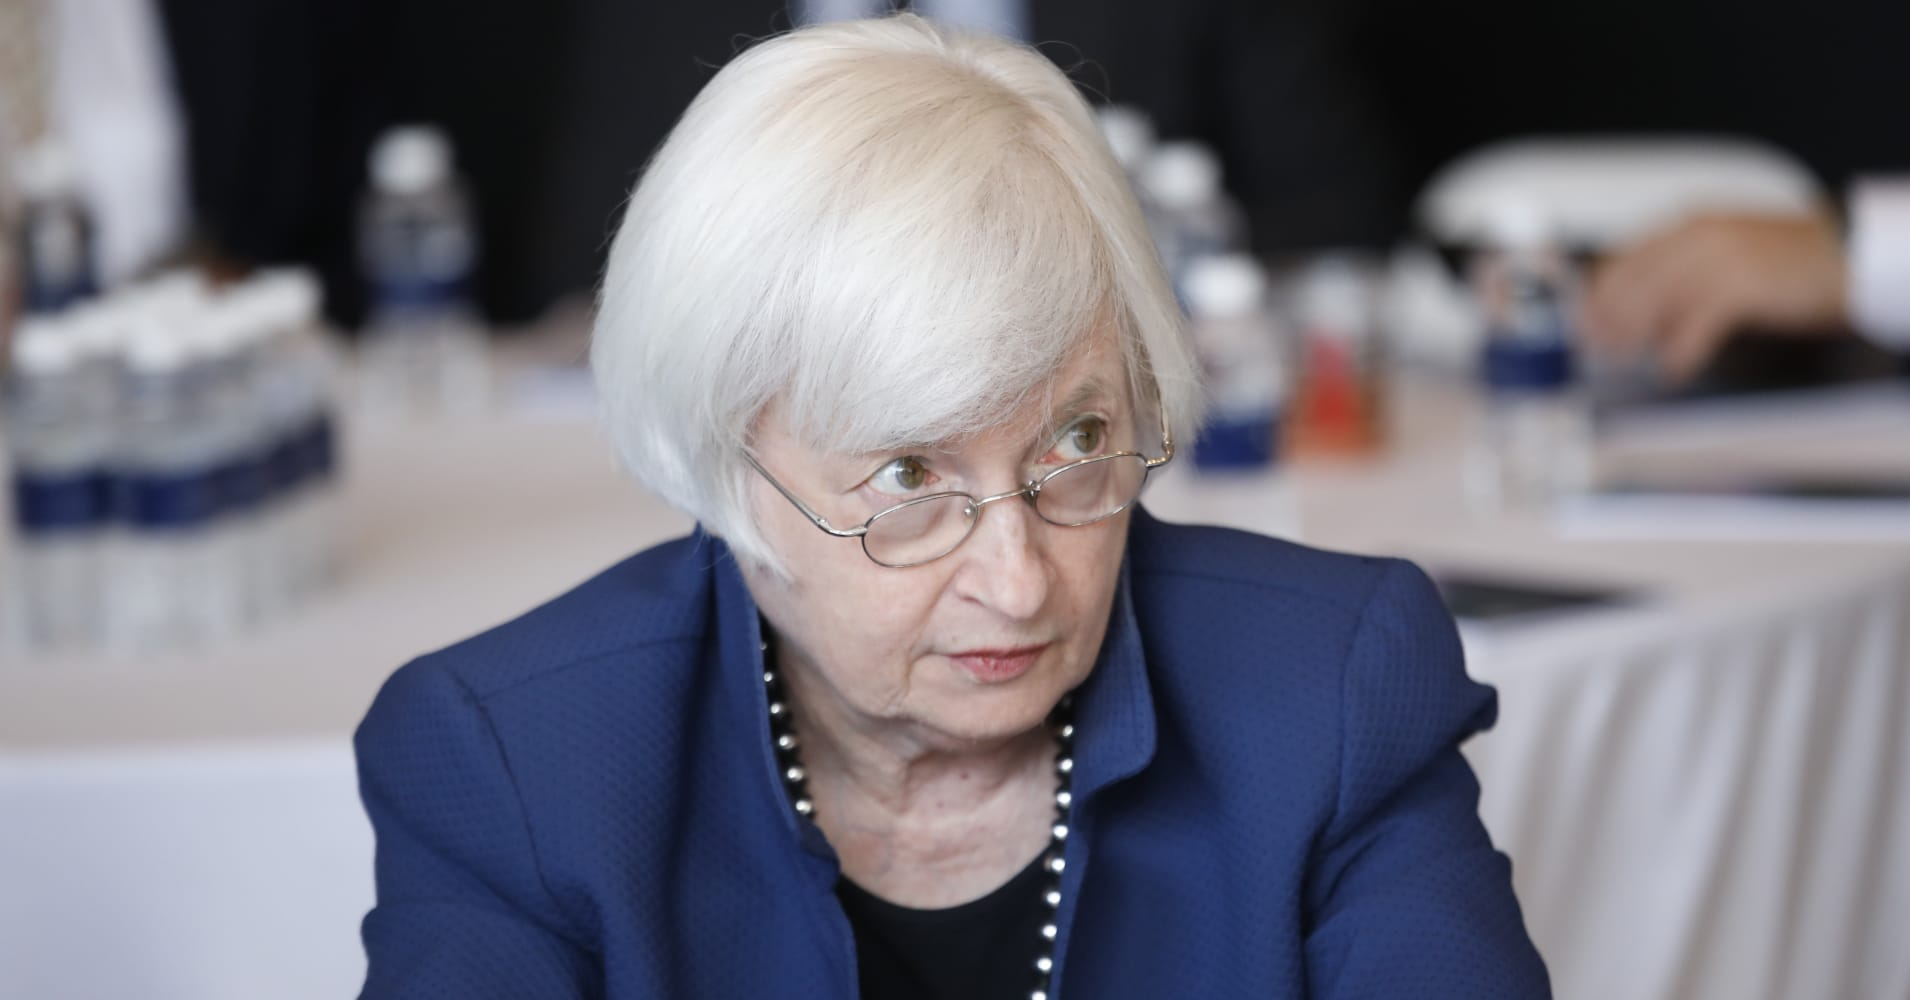 Yellen warns of another potential financial crisis: 'Gigantic holes in the system'